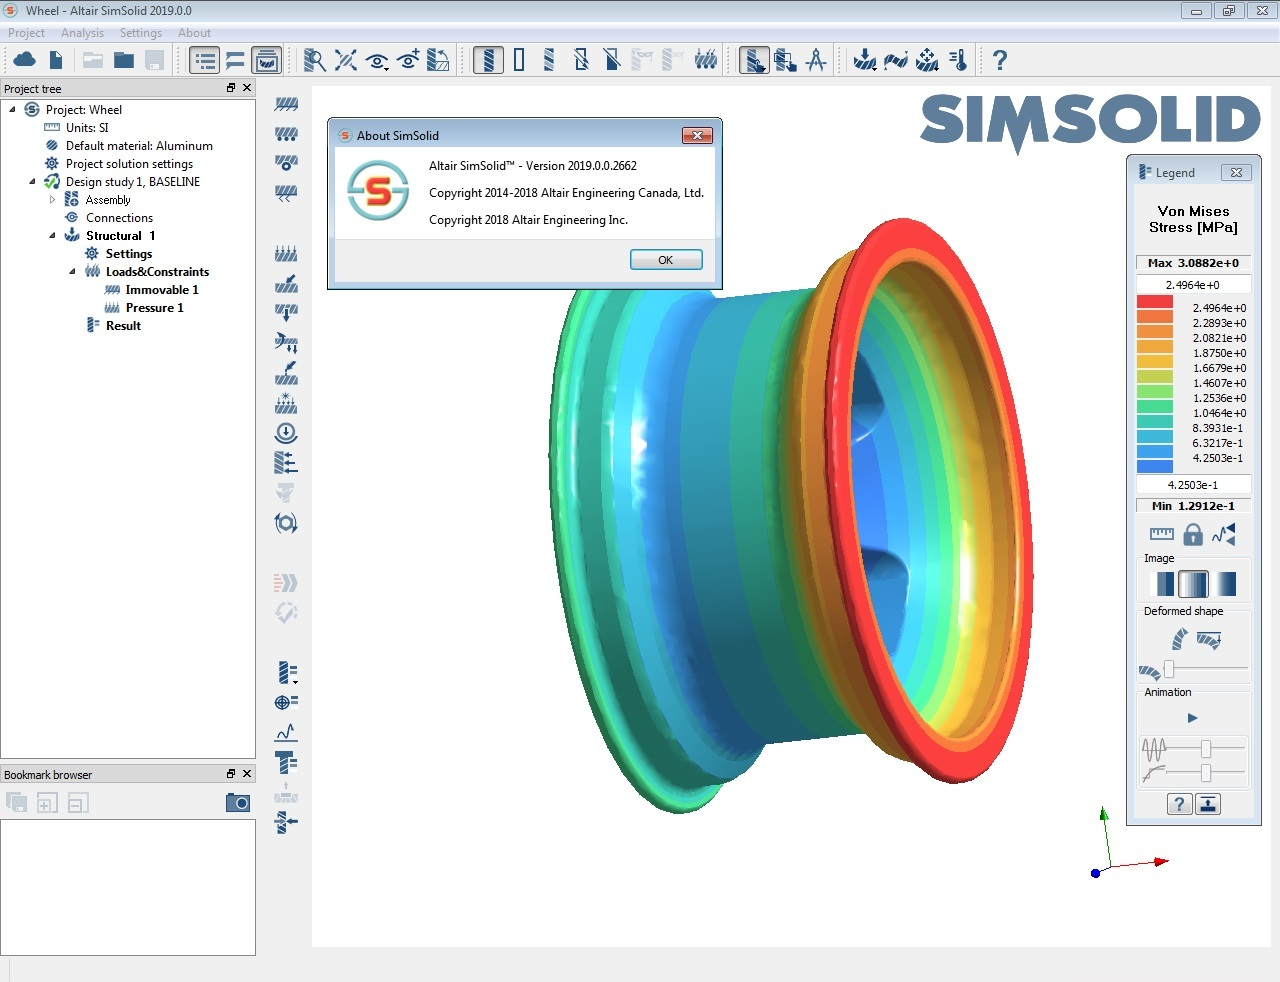 Working with Altair SimSolid 2019.0.0.2662 full license